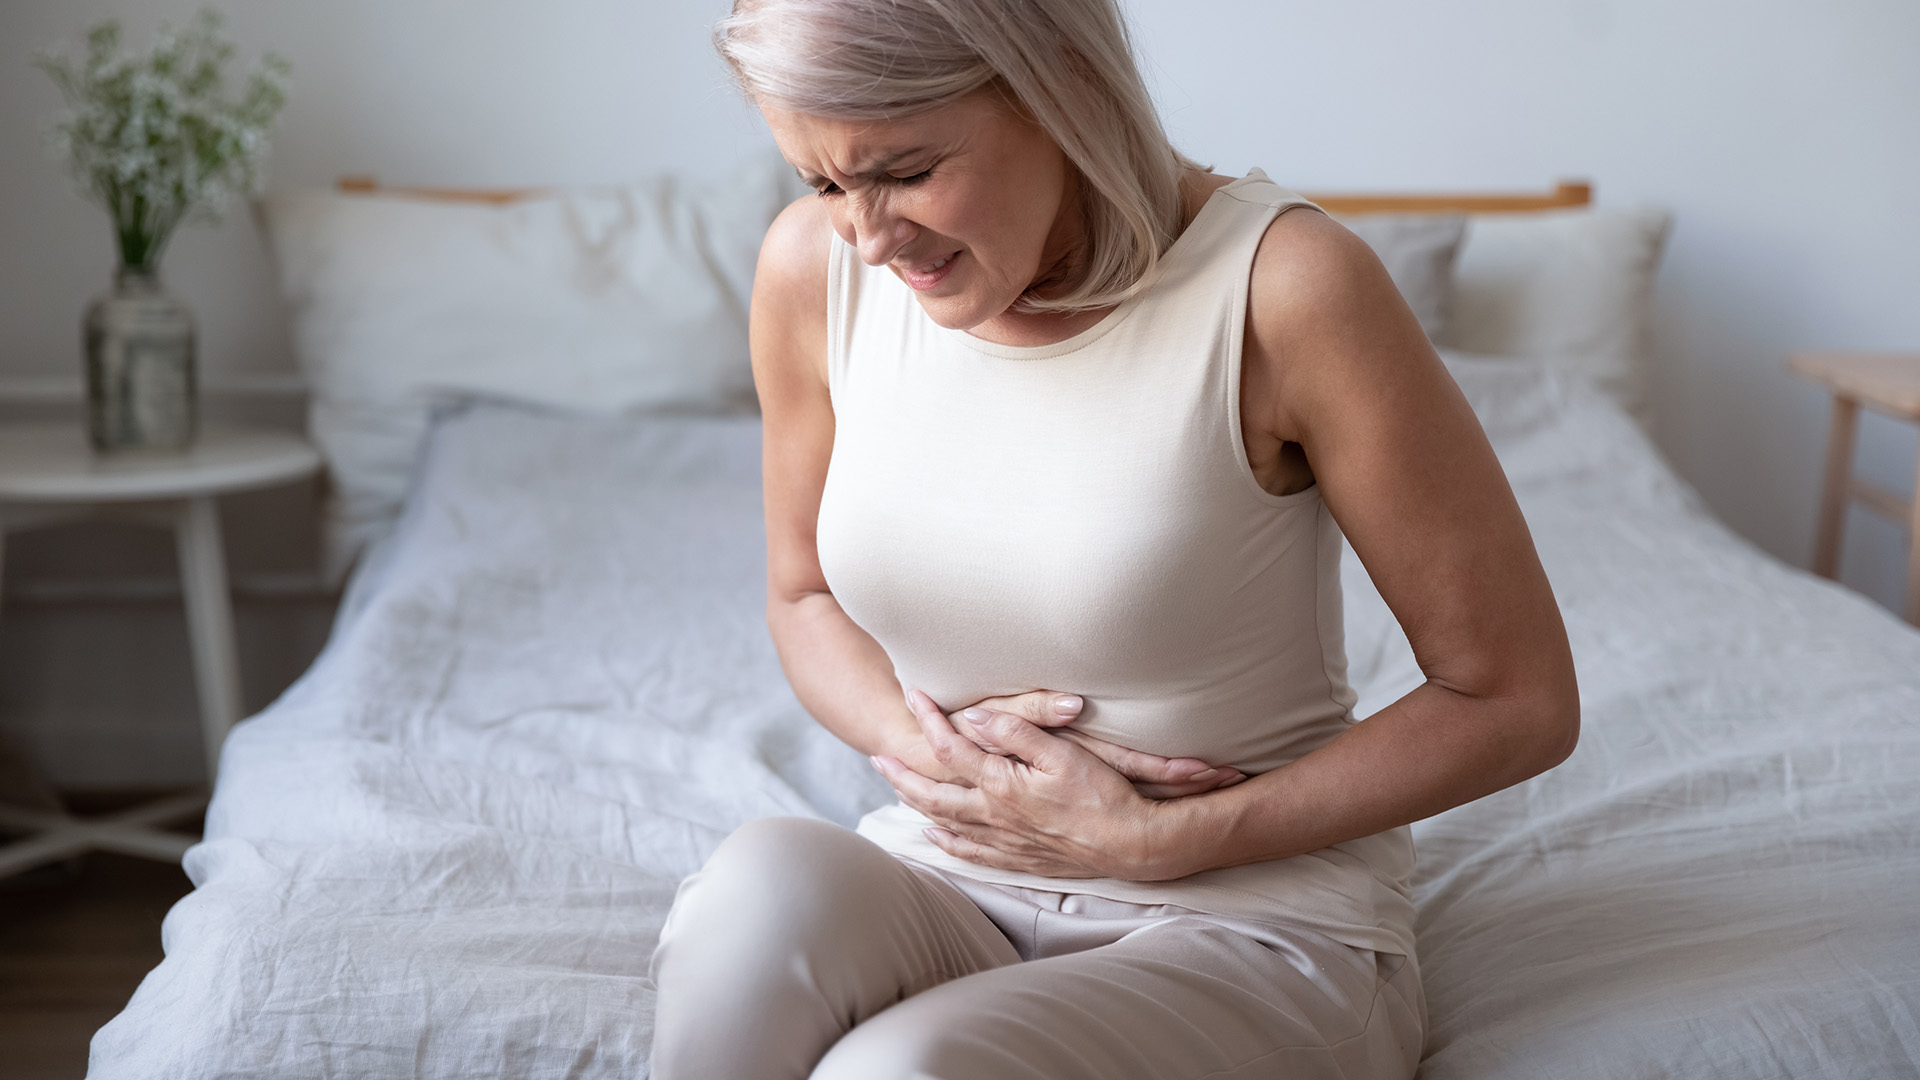 Pelvic Floor Disorders: More Common Than You Think